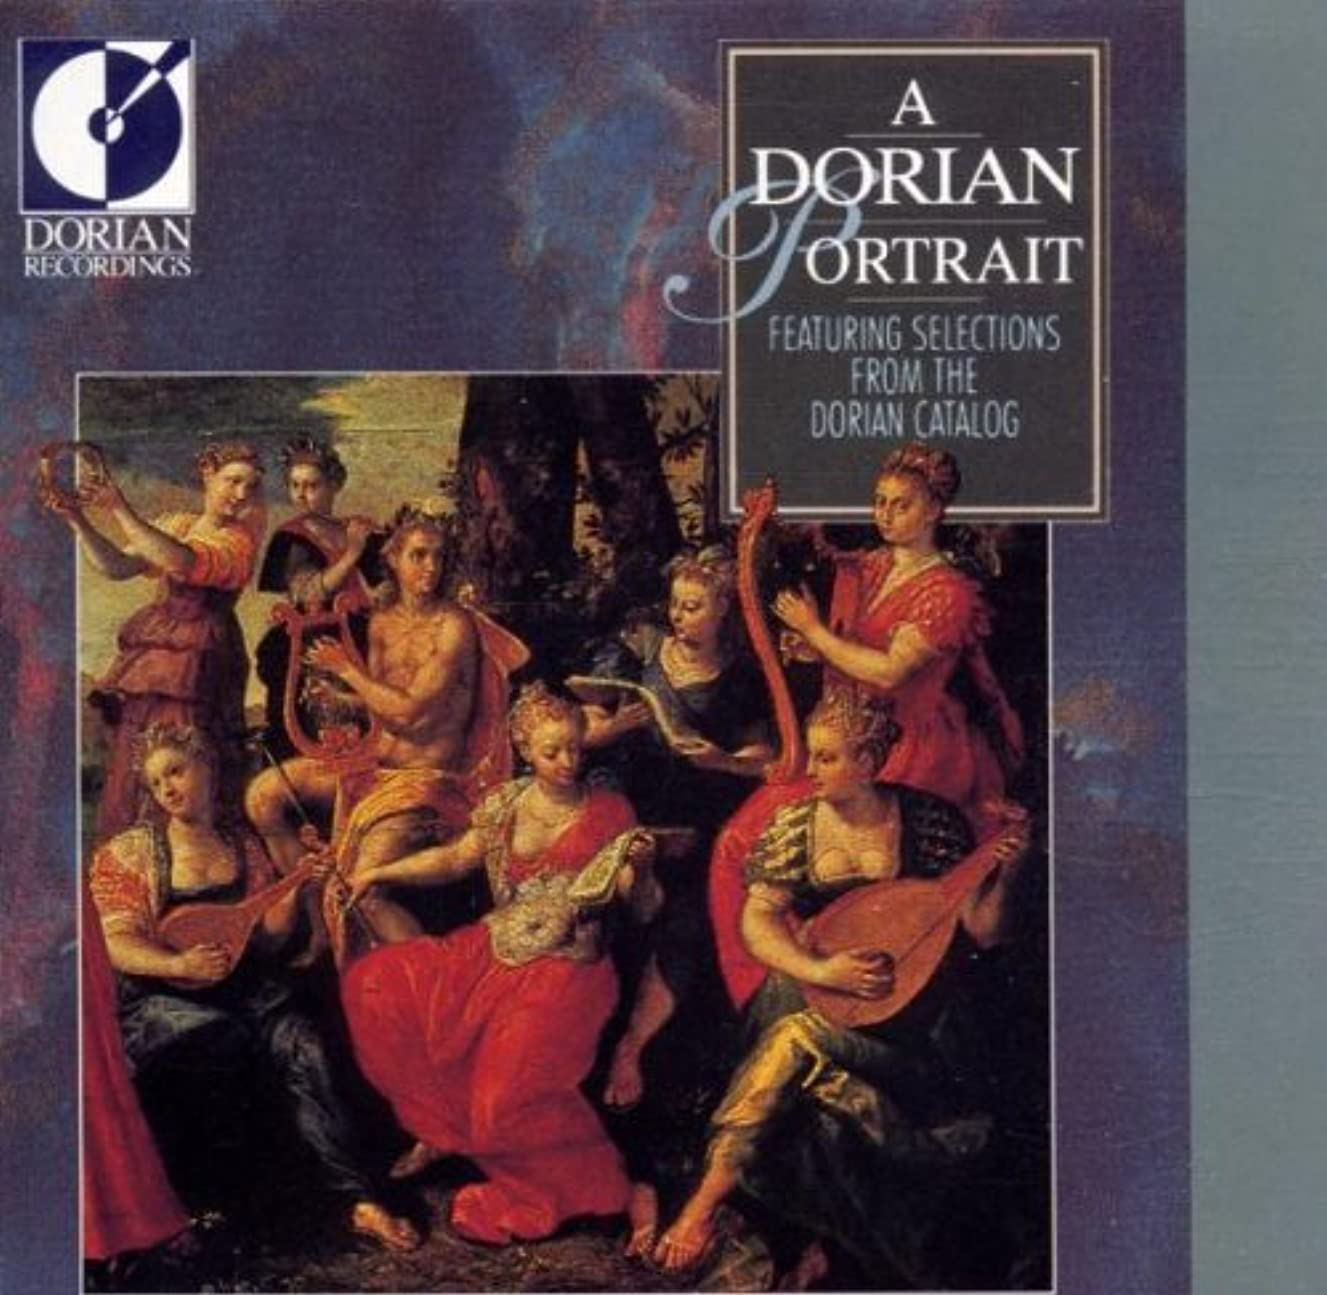 A Dorian Portrait: Featuring Selections from the Dorian Catalog